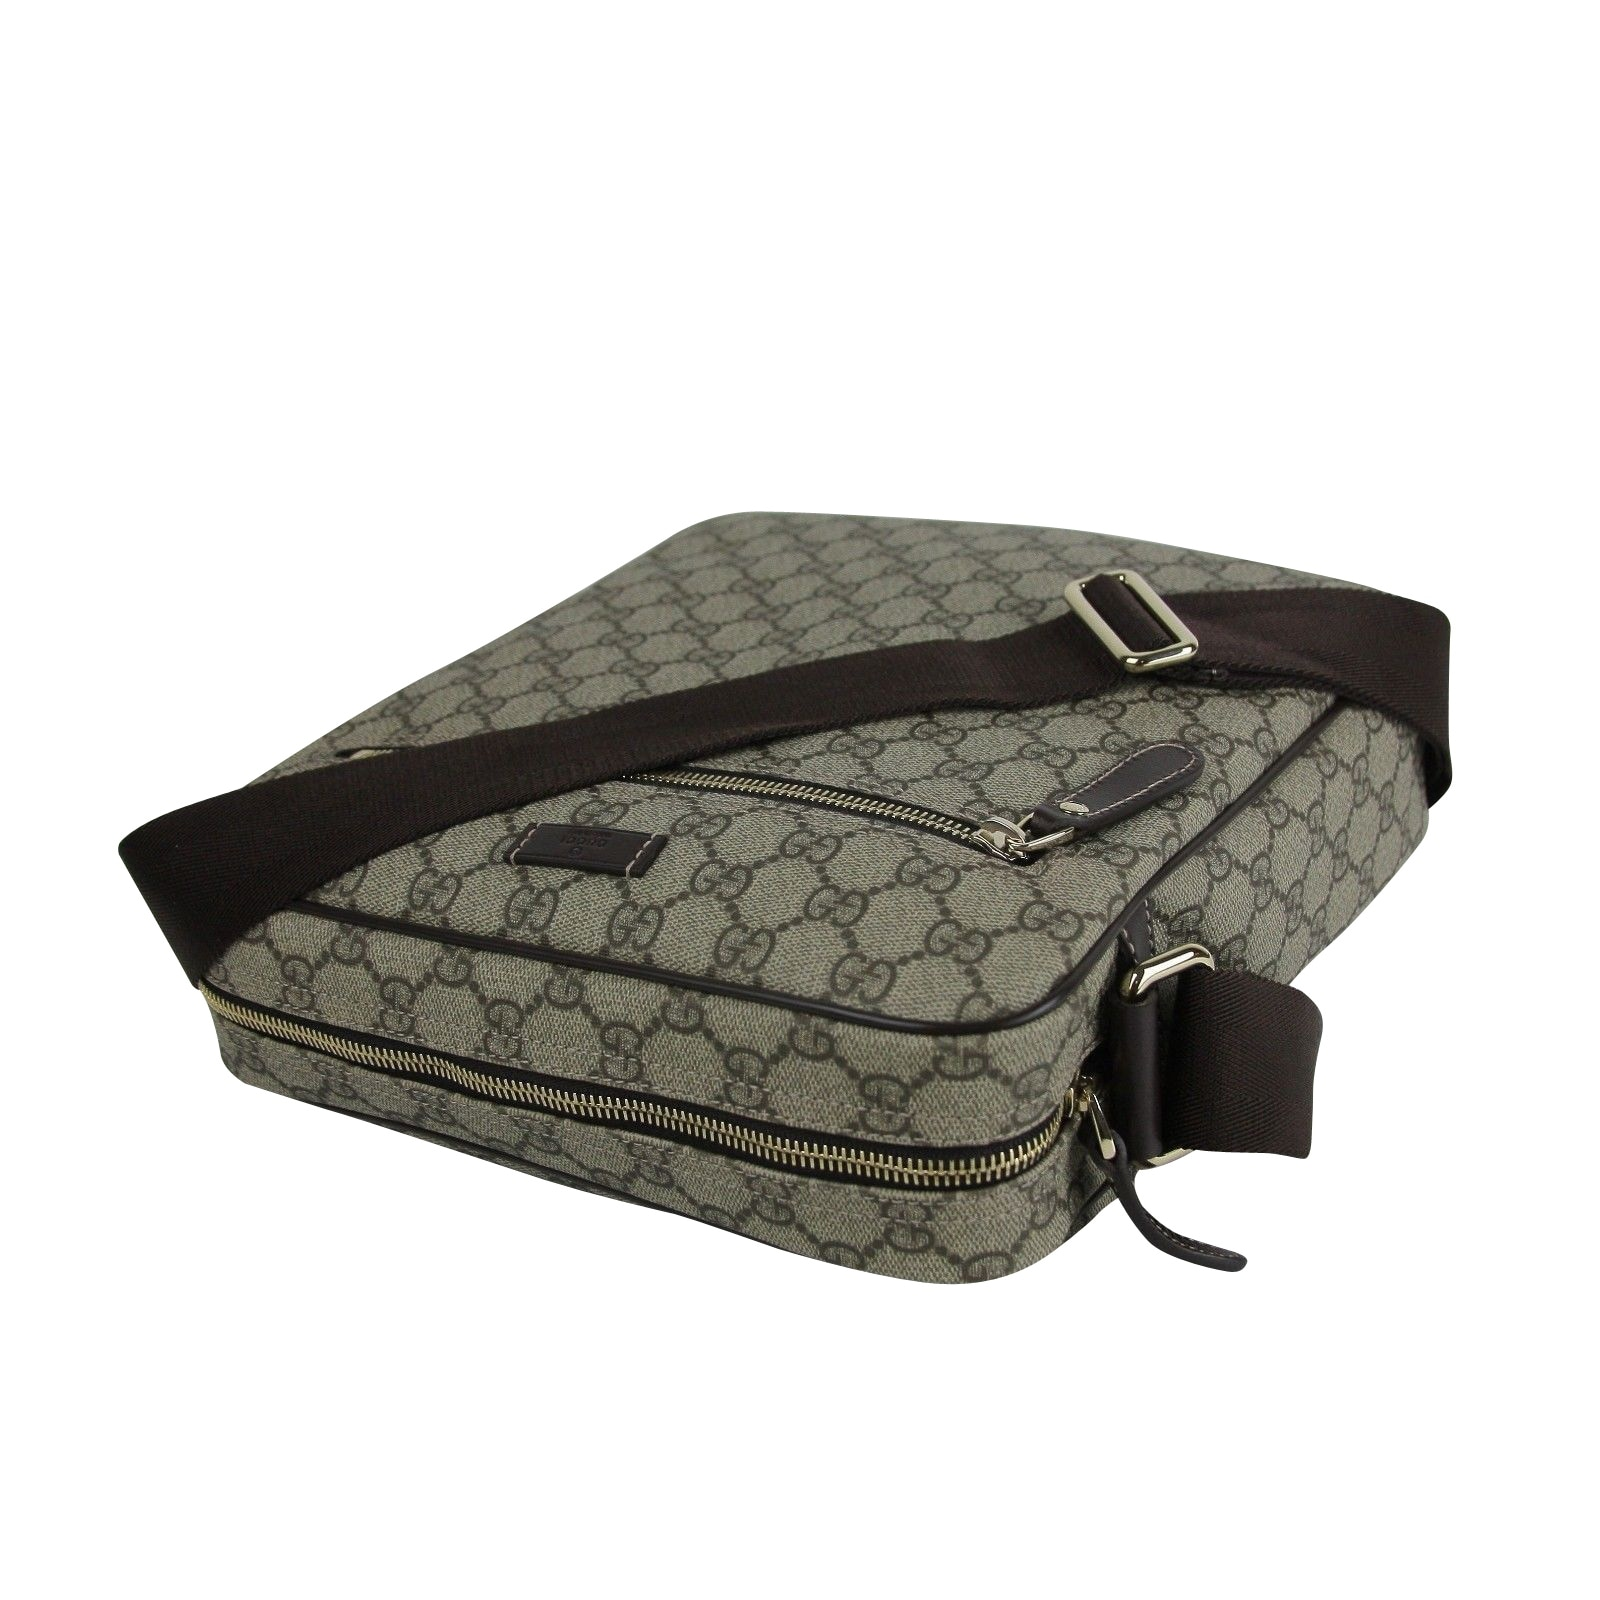 24094b9d769a Shop Gucci Men's Shoulder Beige/Ebony GG Coated Canvas Bag 201448 FCIGG  8588 - One size - Free Shipping Today - Overstock - 27603155